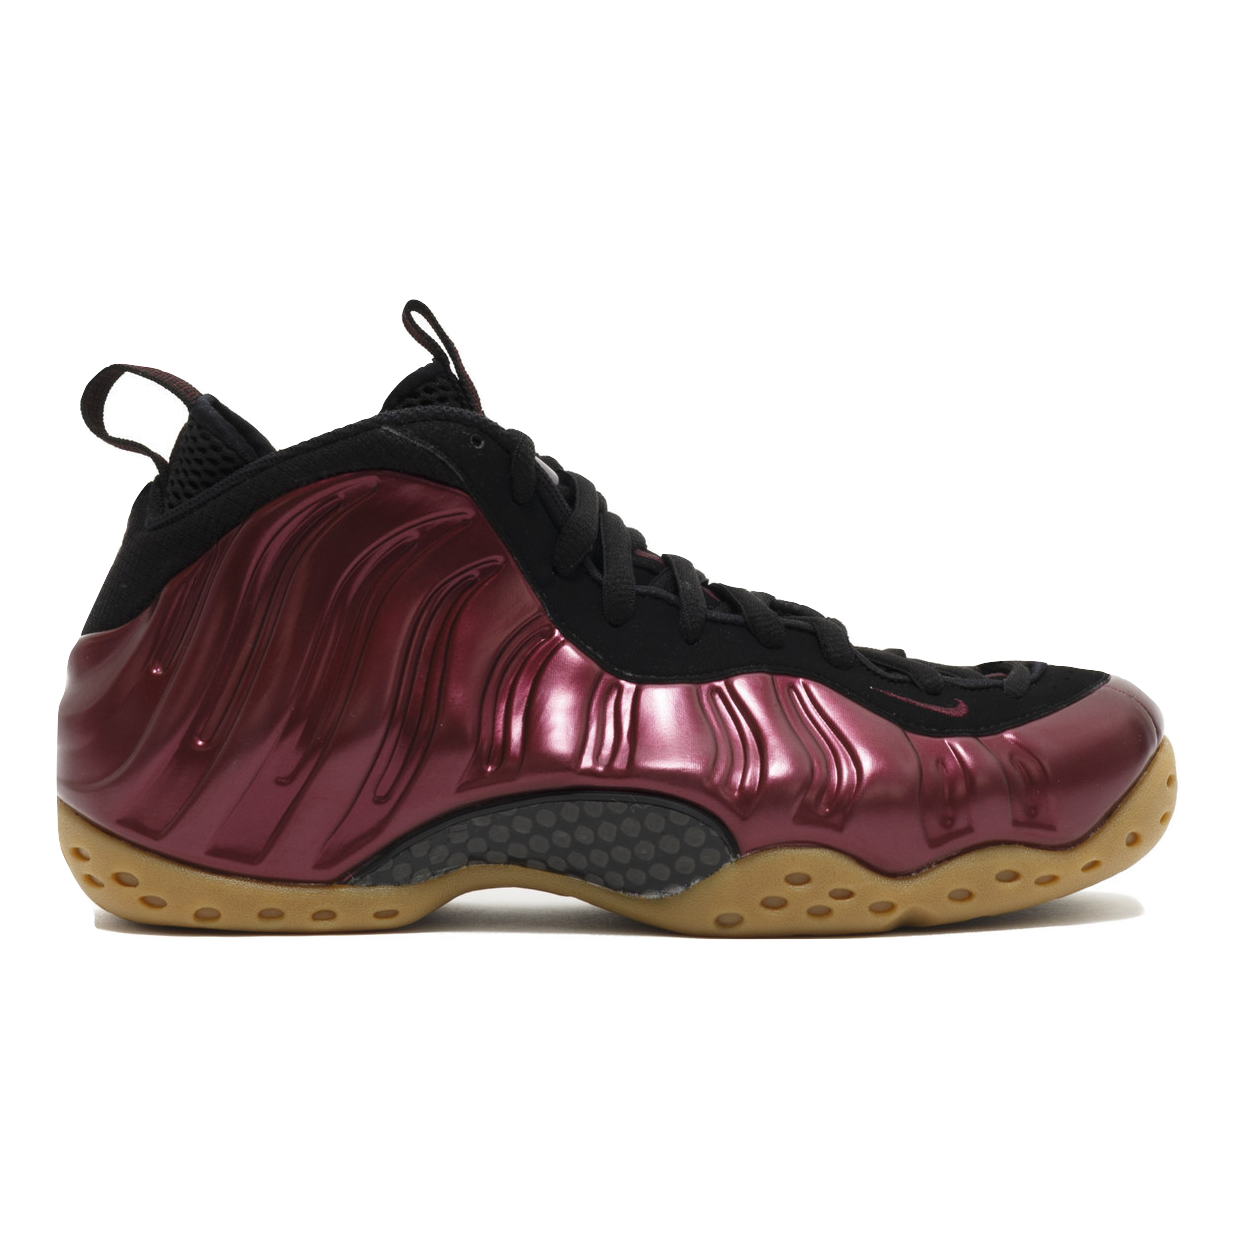 Nike Air Foamposite One - Maroon